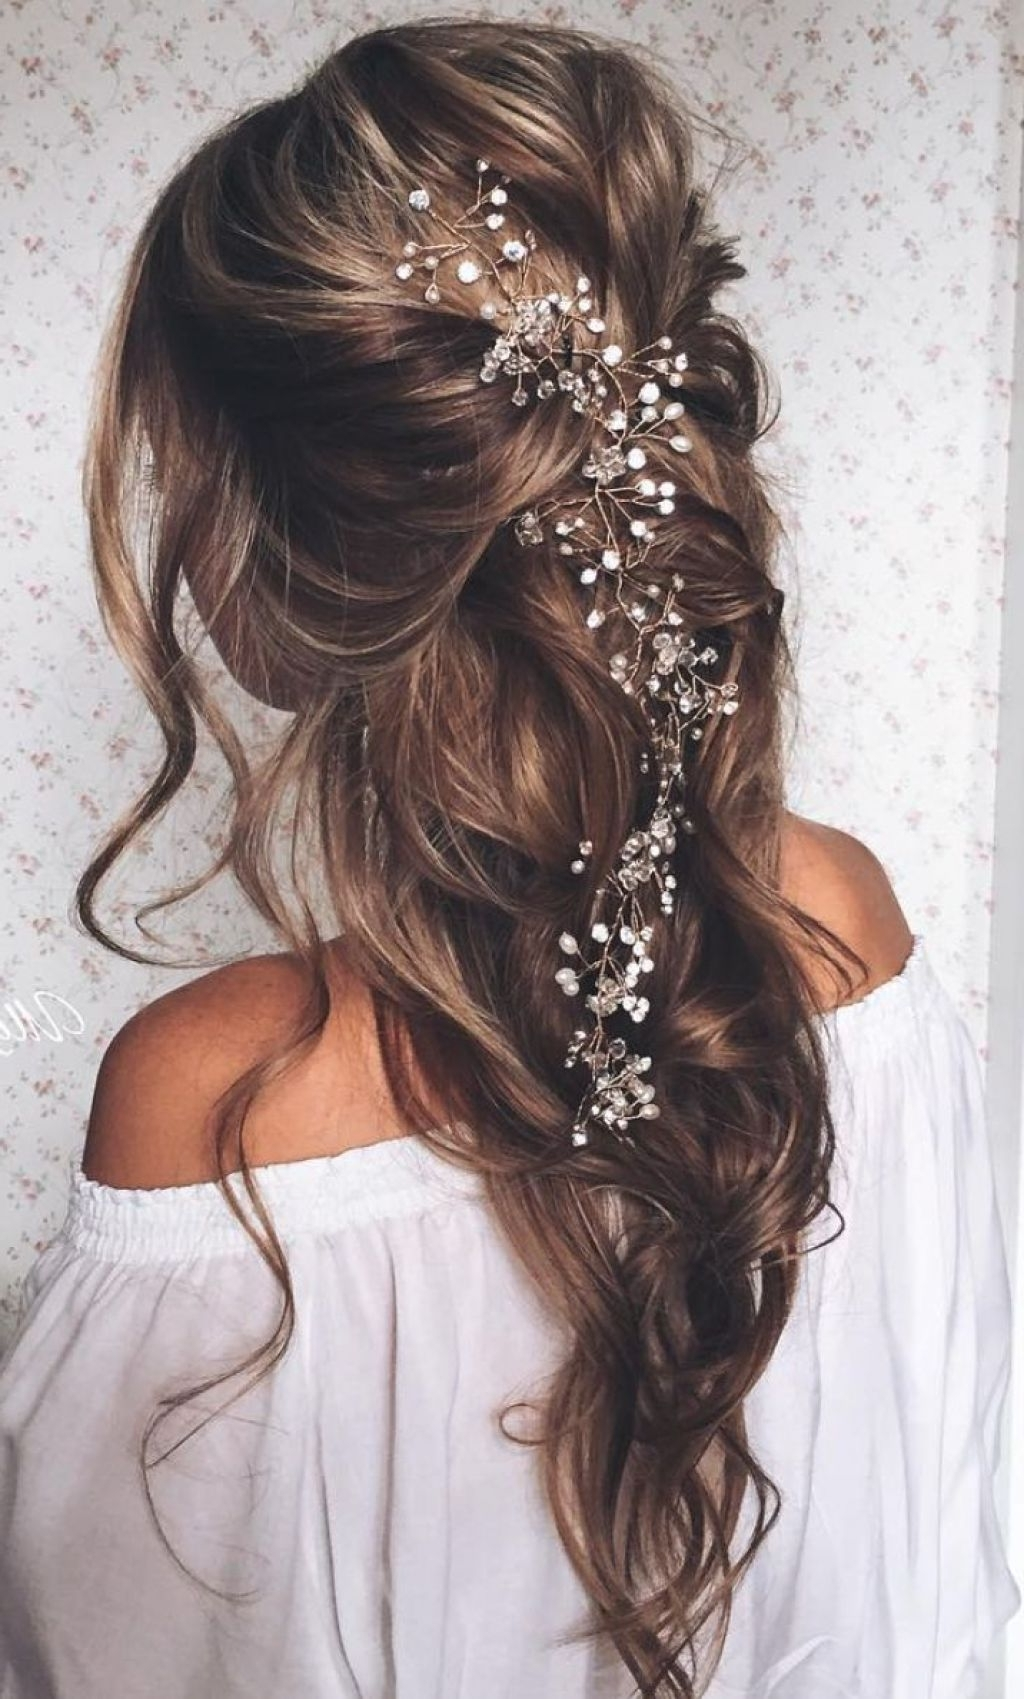 2018 Half Up Wedding Hairstyles For Long Hair Throughout √ 24+ Nice Wedding Hairstyles For Long Hair Half Up (View 3 of 15)